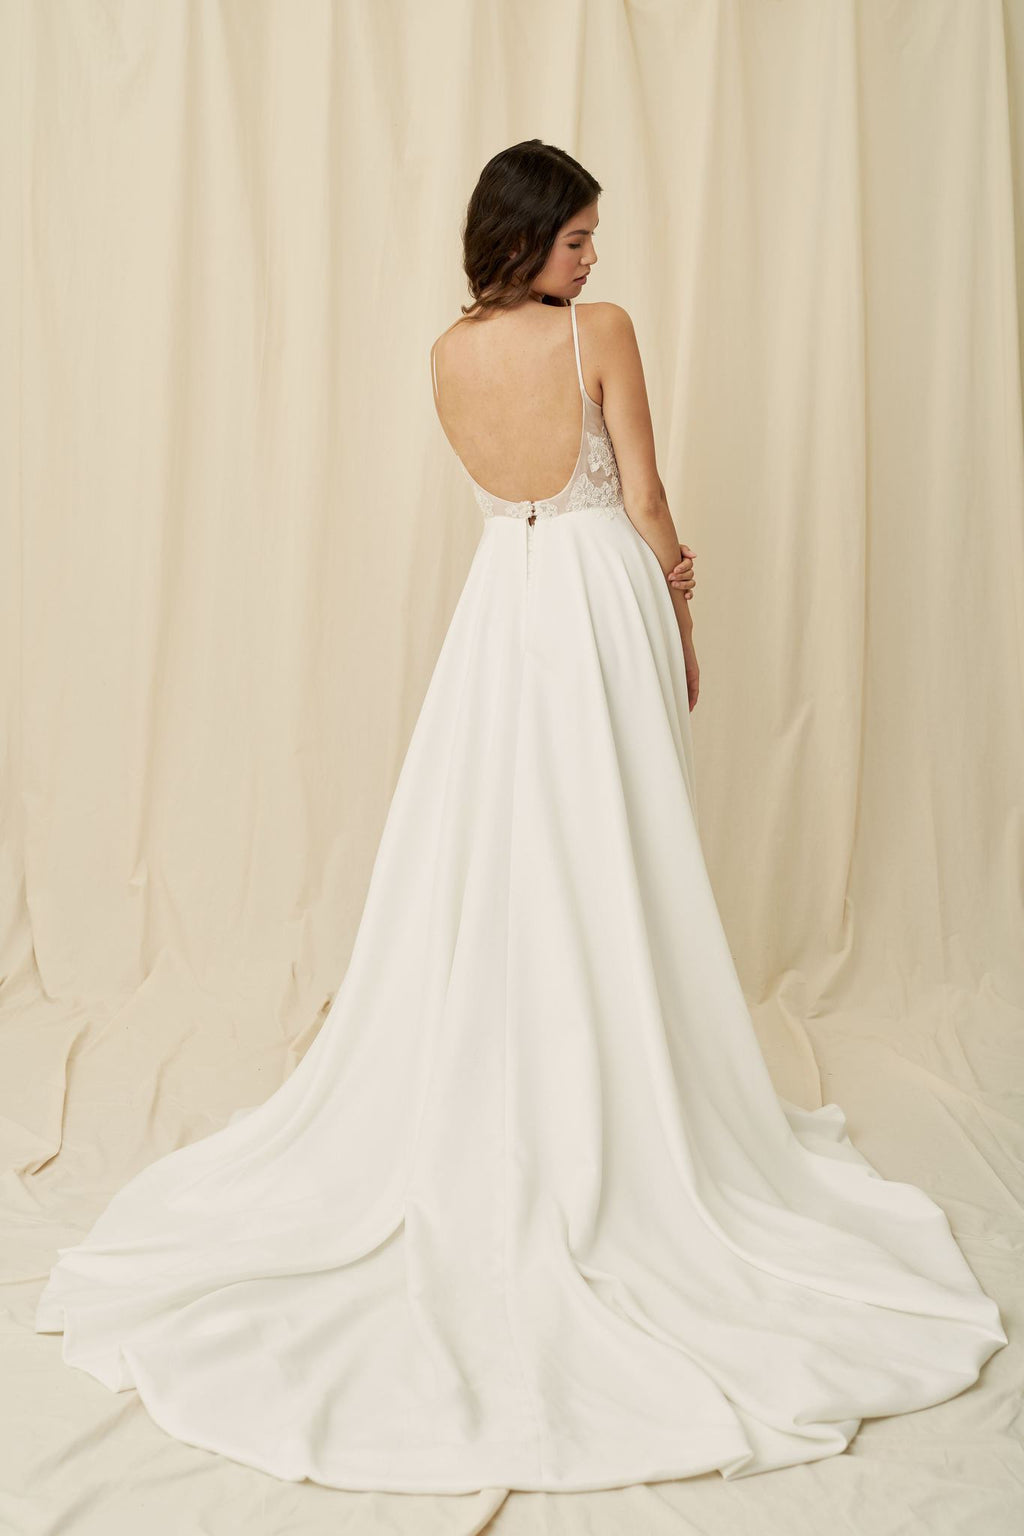 Crepe wedding dress with lace sides, a low back, and pockets